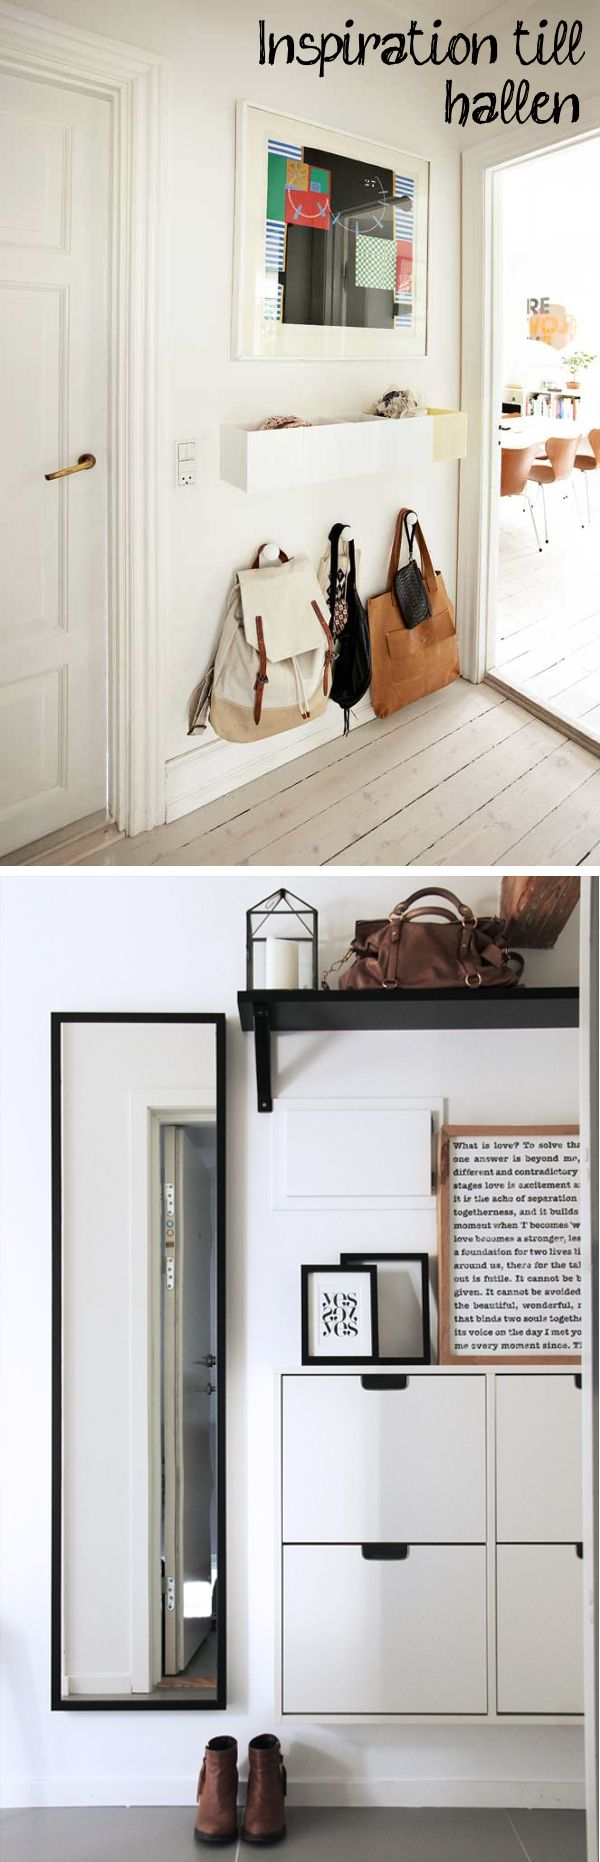 Low level bag and small person coat storage in the hallway                                                                                                                                                     More